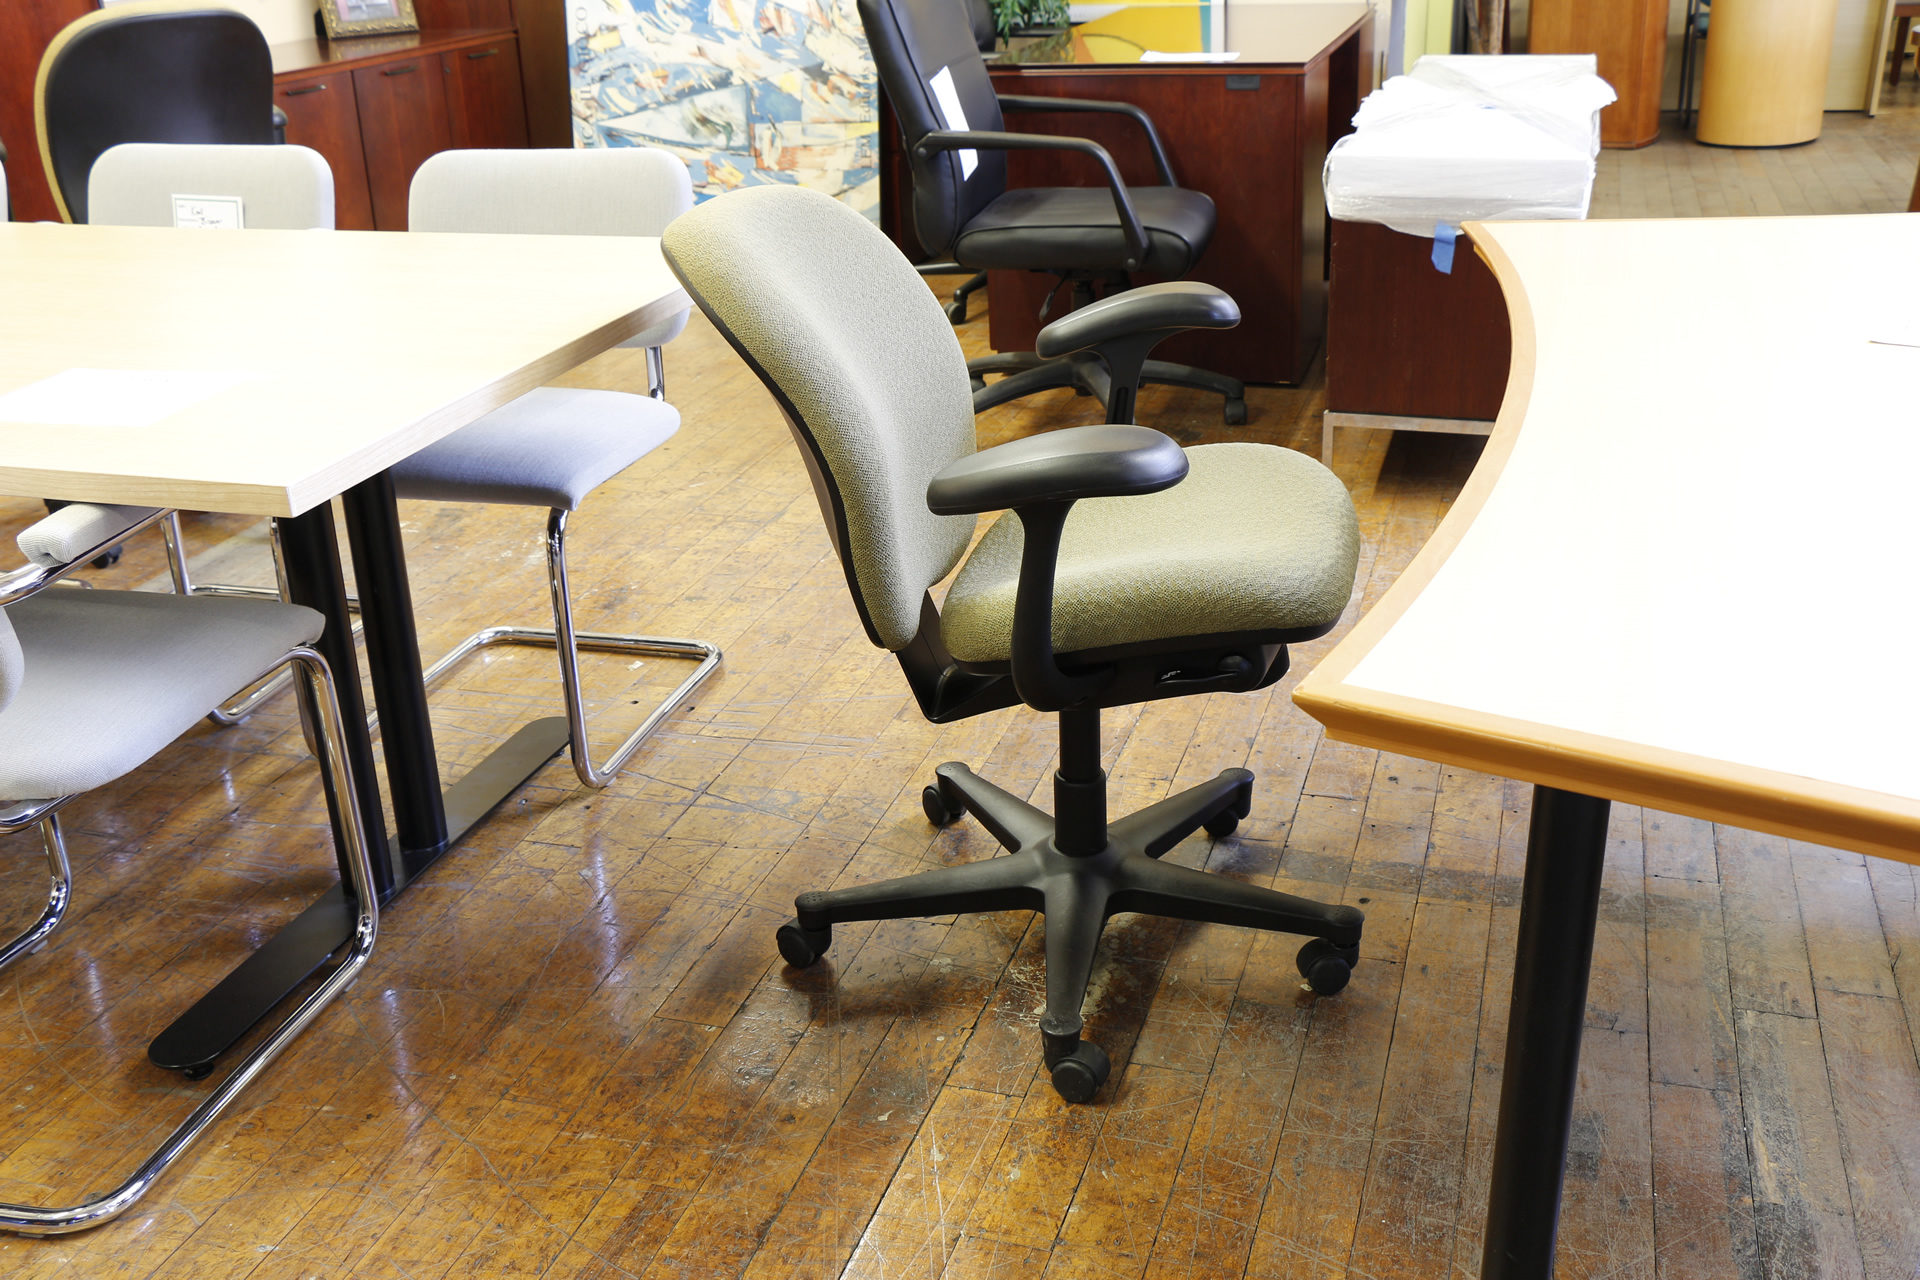 peartreeofficefurniture_peartreeofficefurniture_mg_4114.jpg